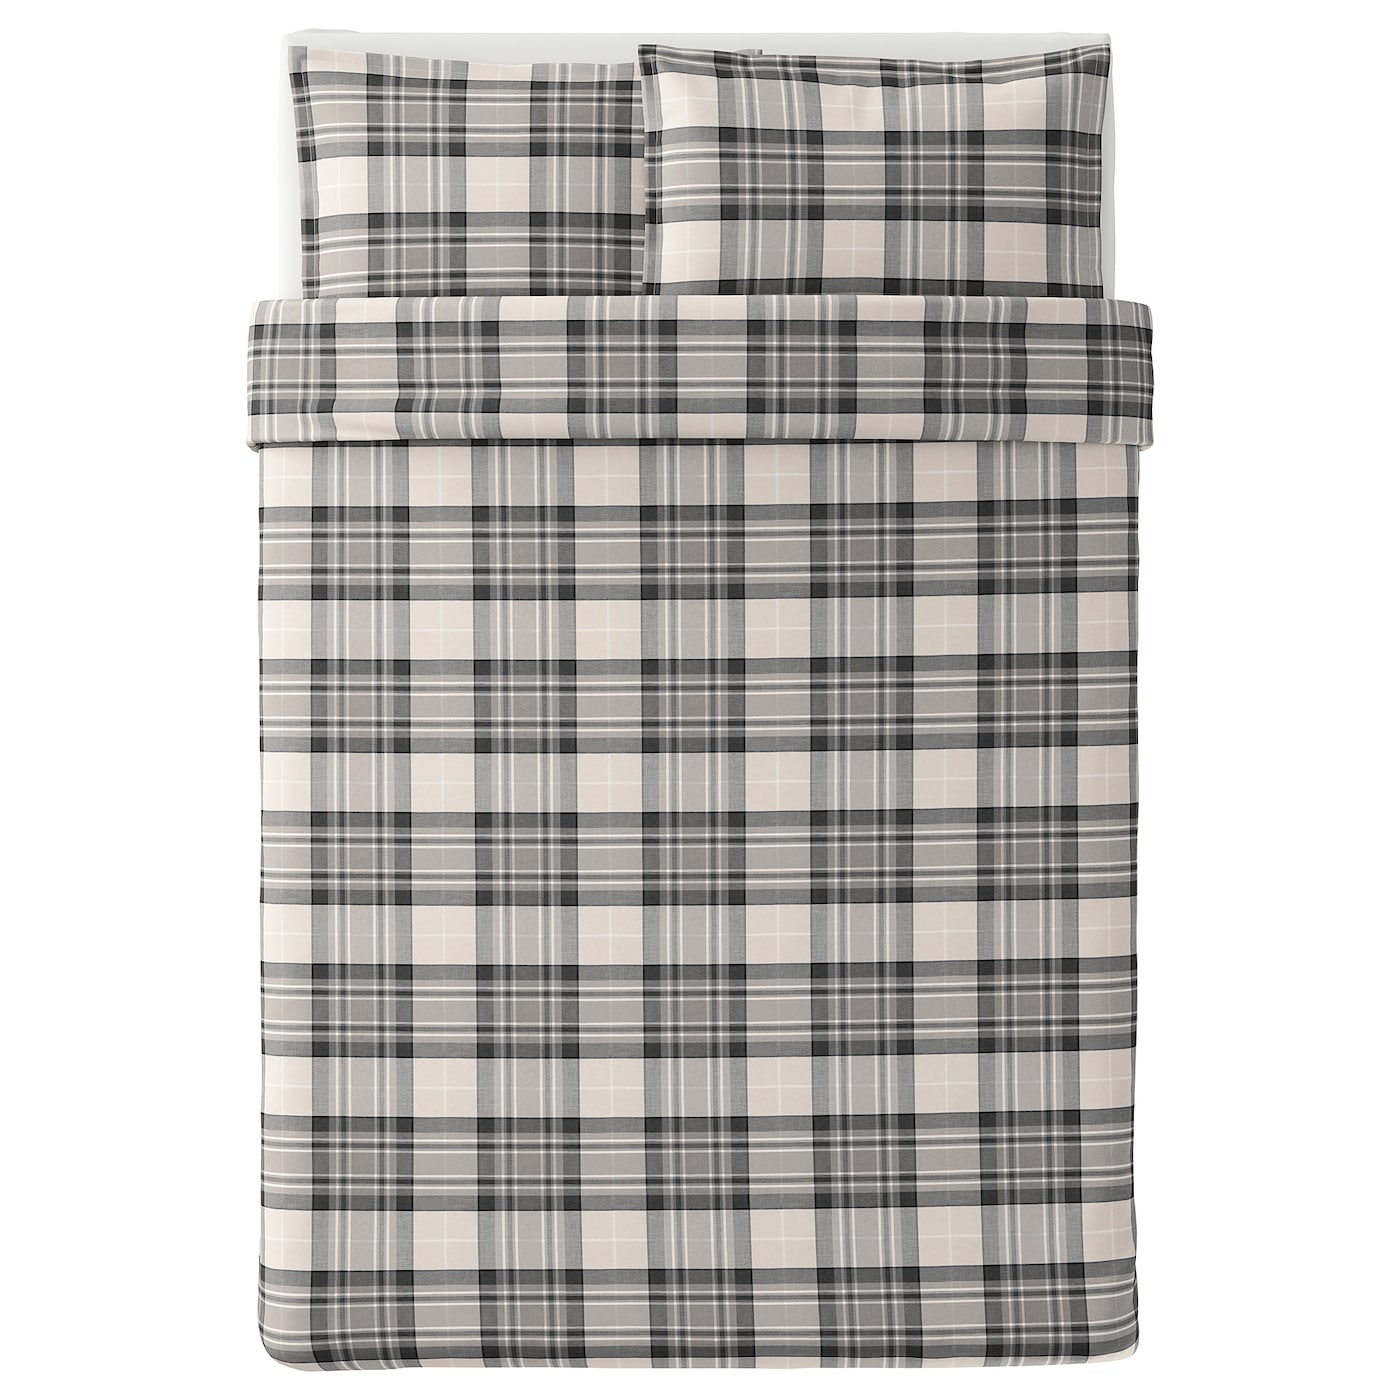 IKEA SMALRUTA quilt cover and 2 pillowcases